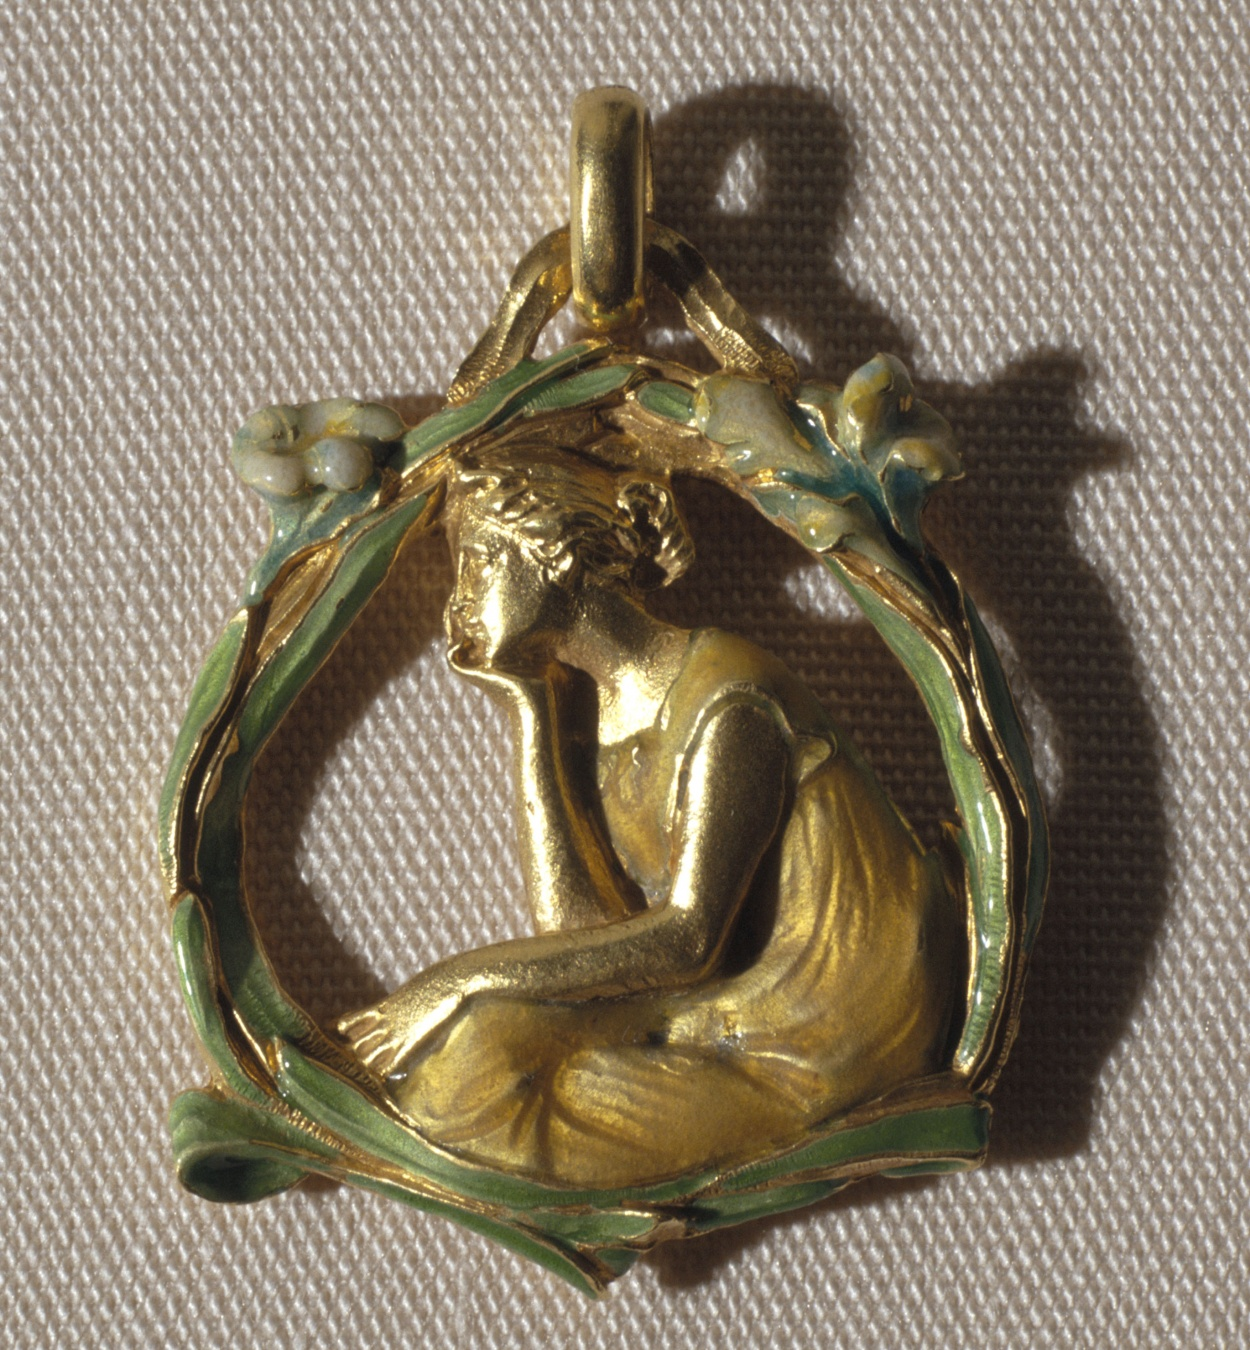 Lluís Masriera - Pendant with figure in profile - Circa 1903